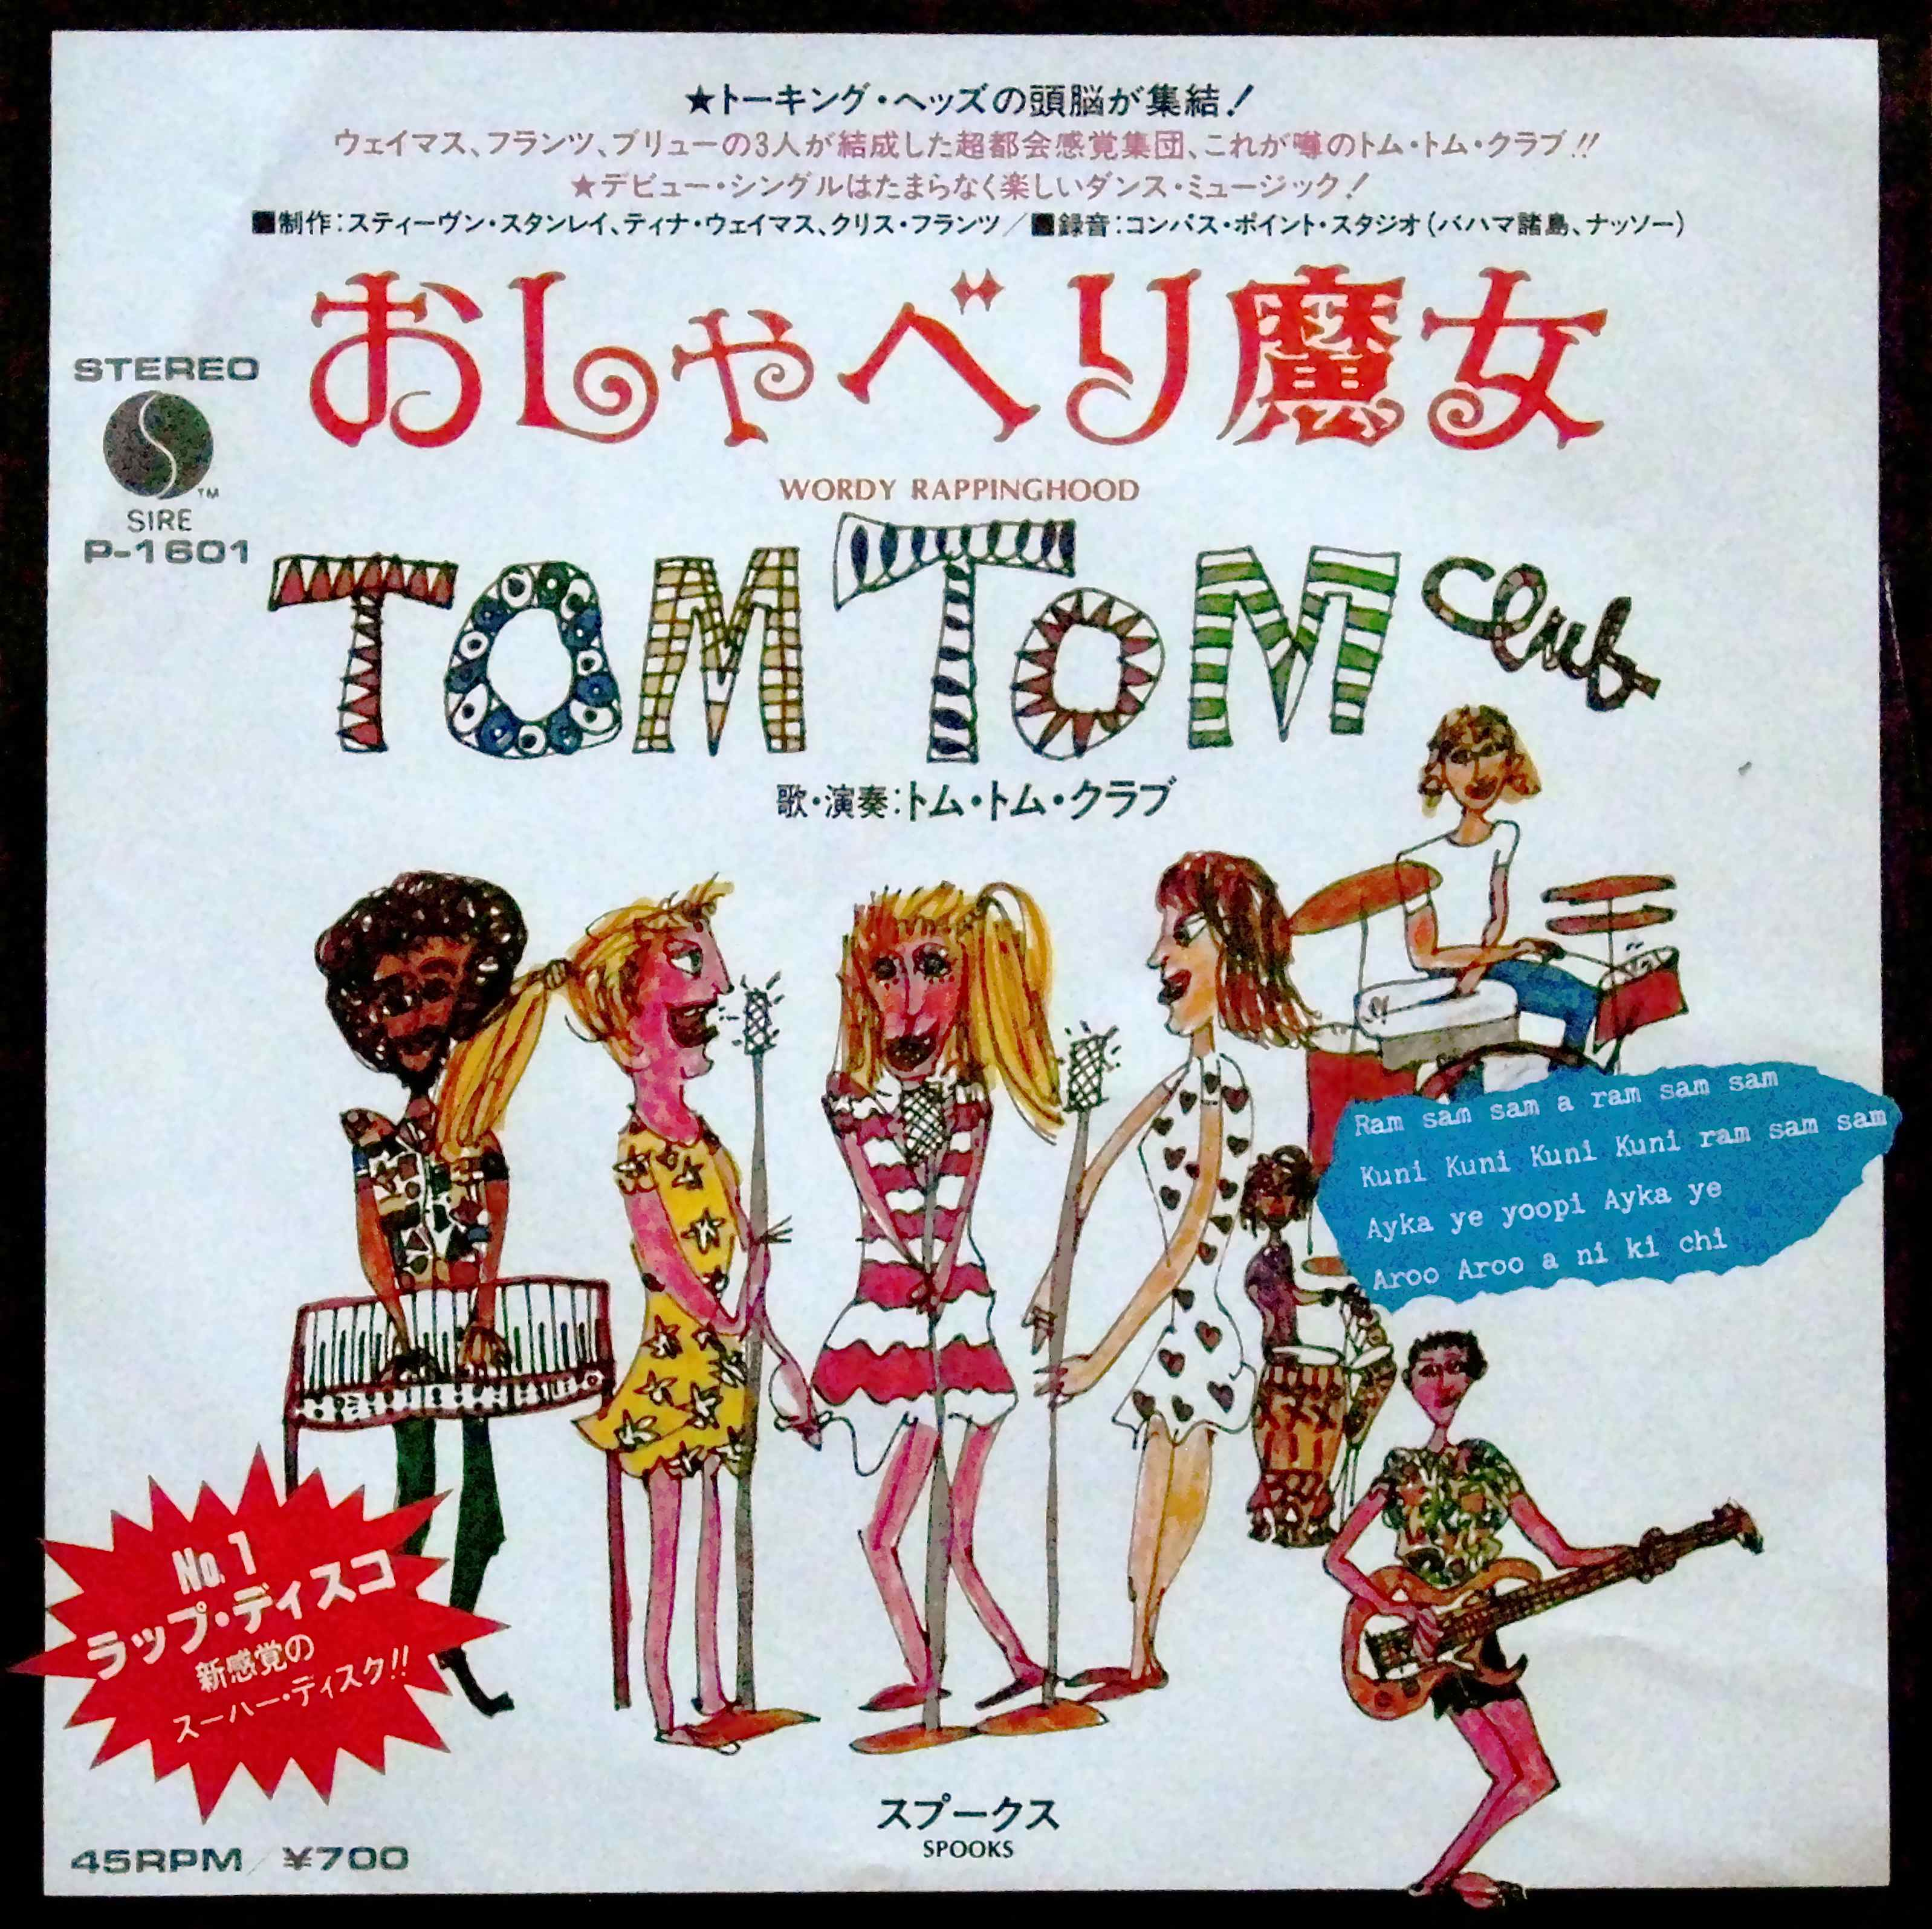 tom tom club トム トム クラブ wordy rappinghood